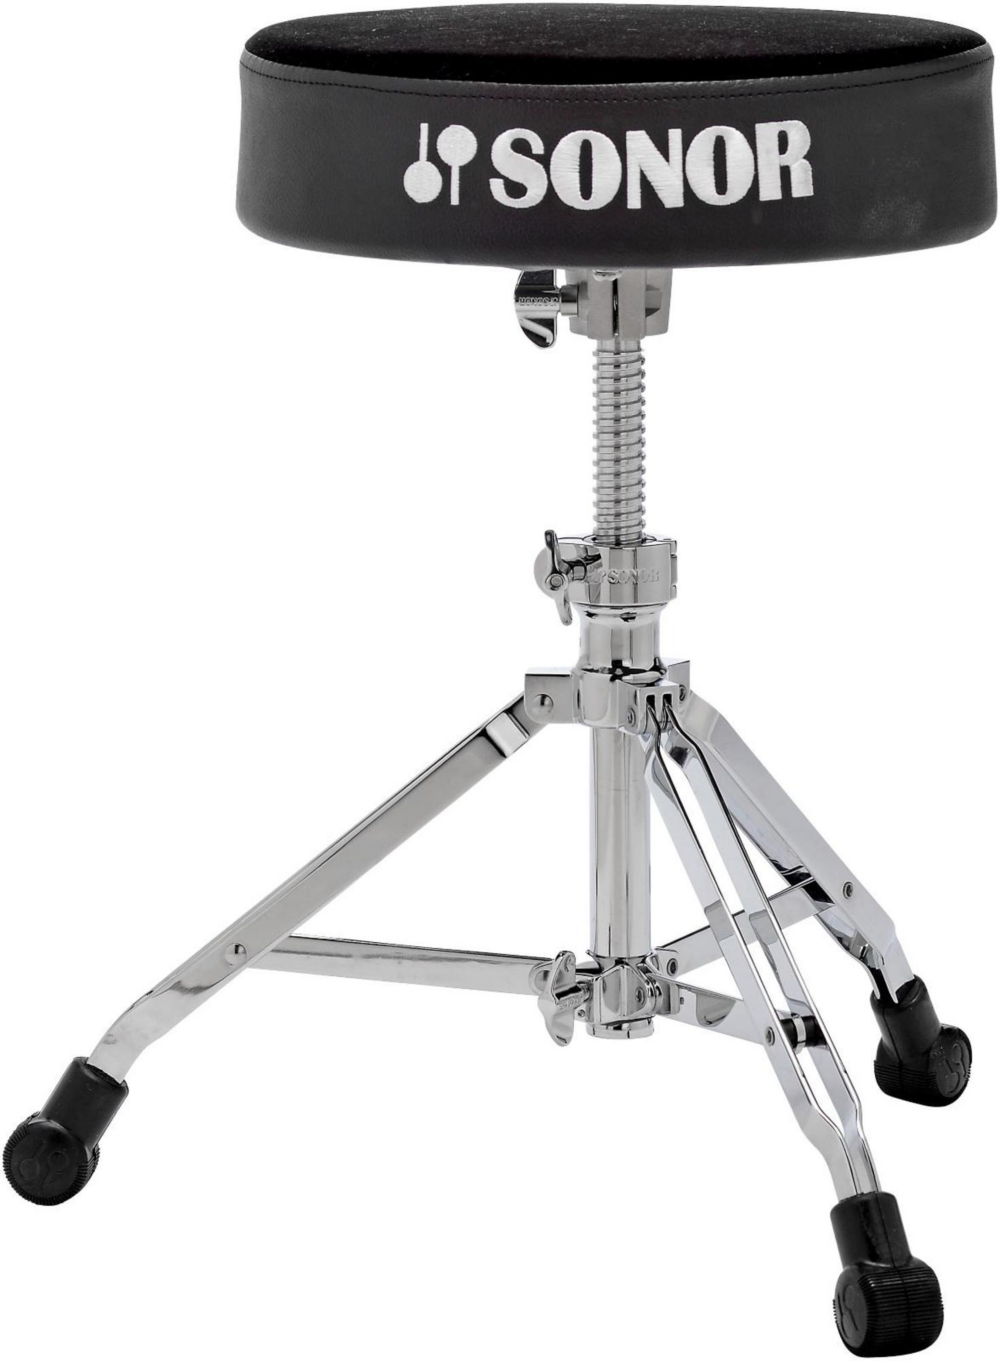 Sonor 4000 Series Drum Throne Black Velour by Sonor